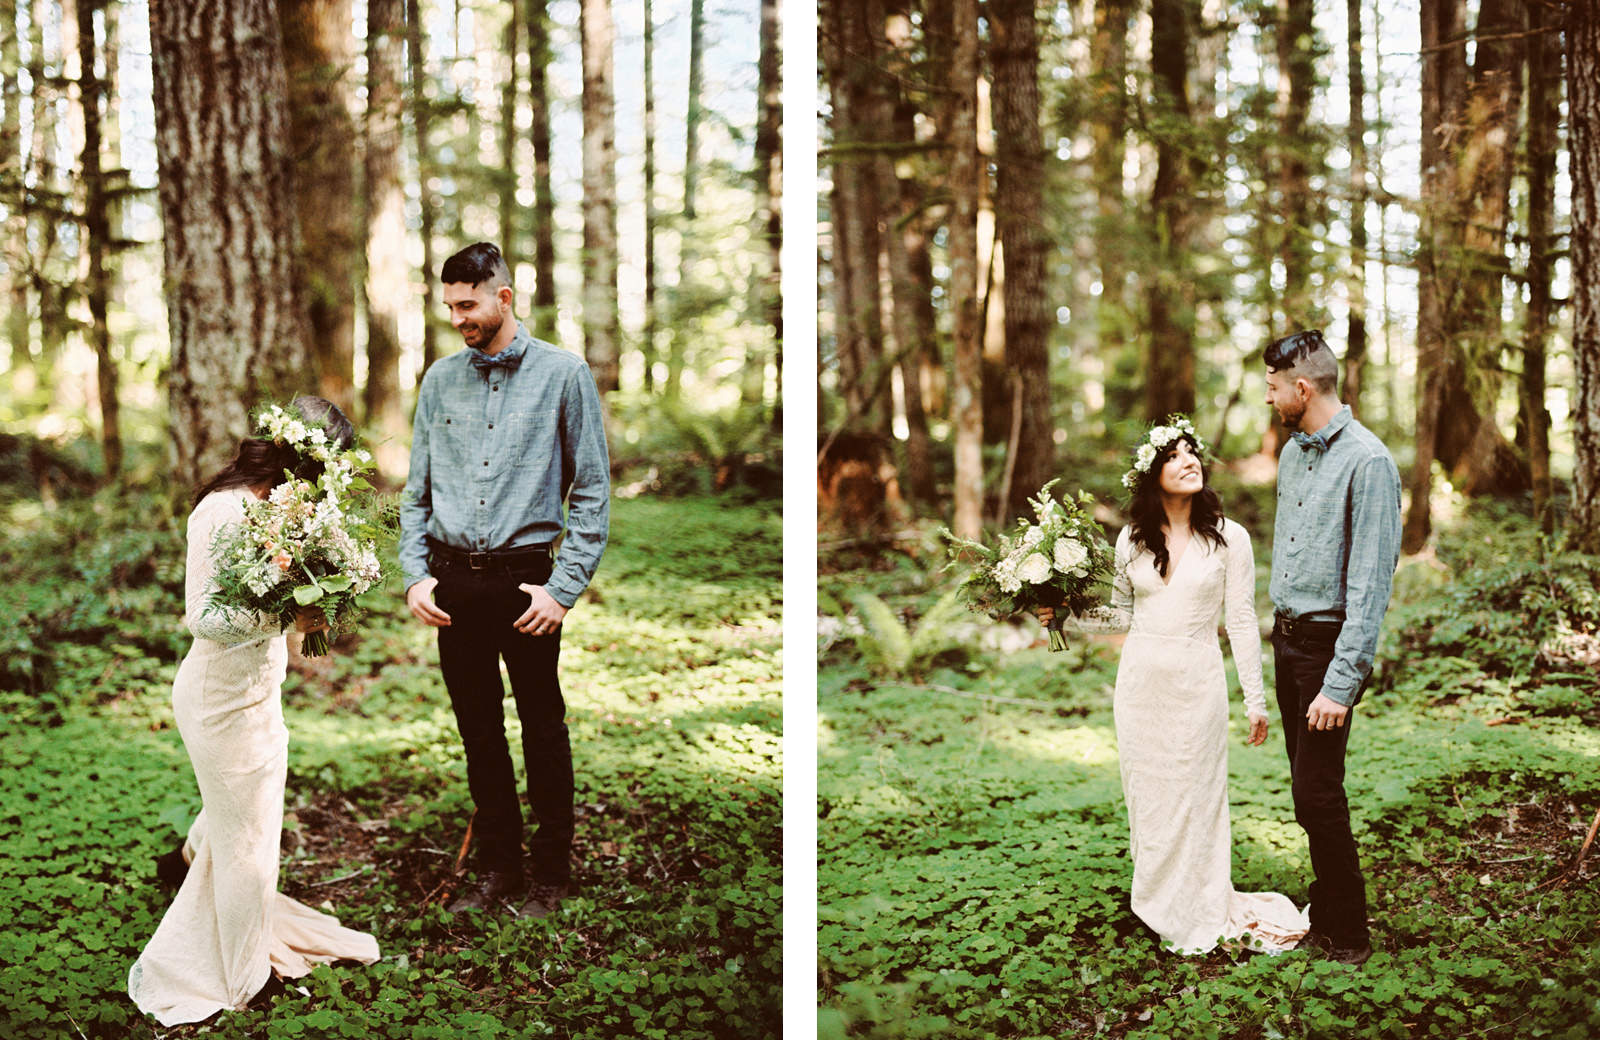 katelynnethan-blog-08 MOUNT RAINIER LOOKOUT ELOPEMENT